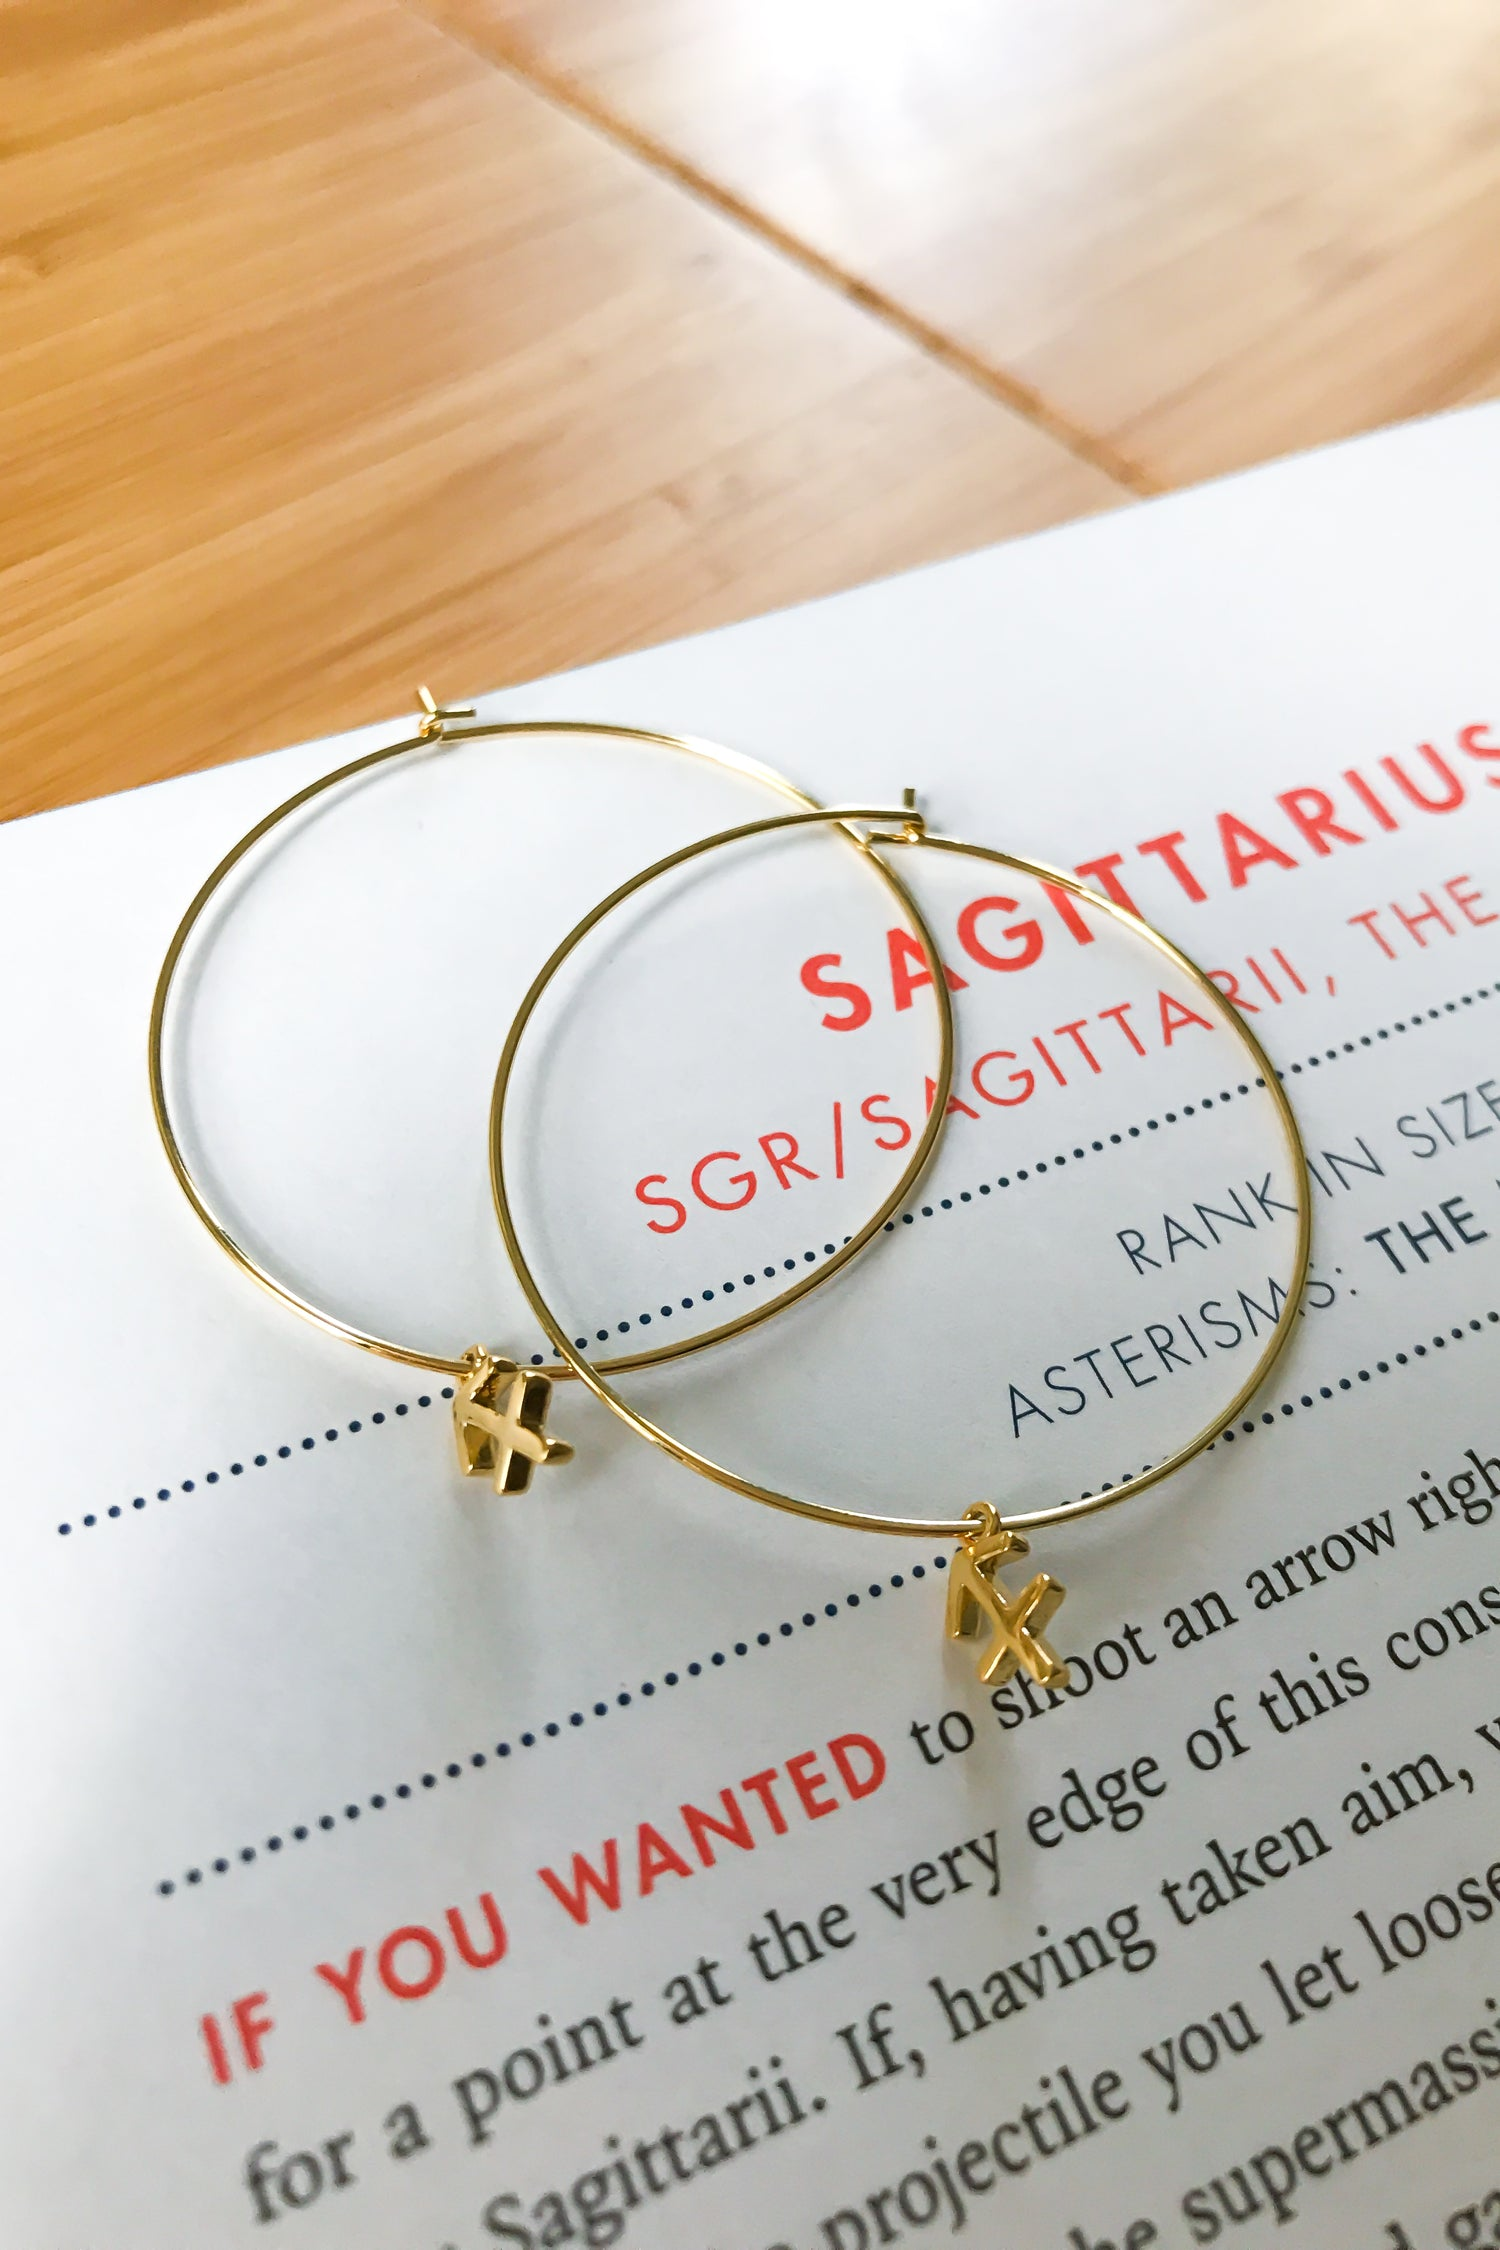 Sagittarius mega hoop earrings